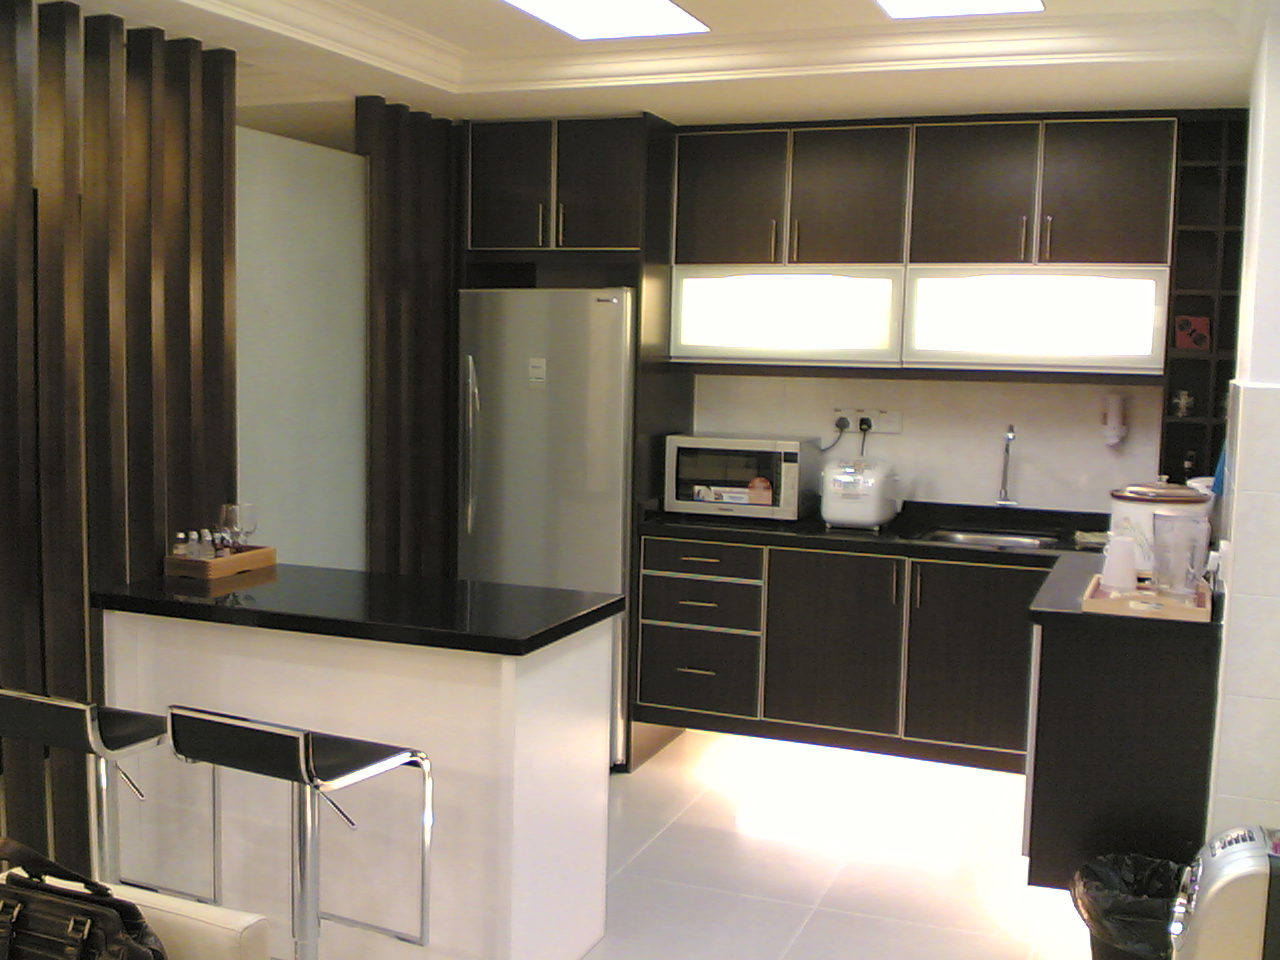 Excellent Modern Small Kitchen Design Ideas 1280 x 960 · 335 kB · jpeg